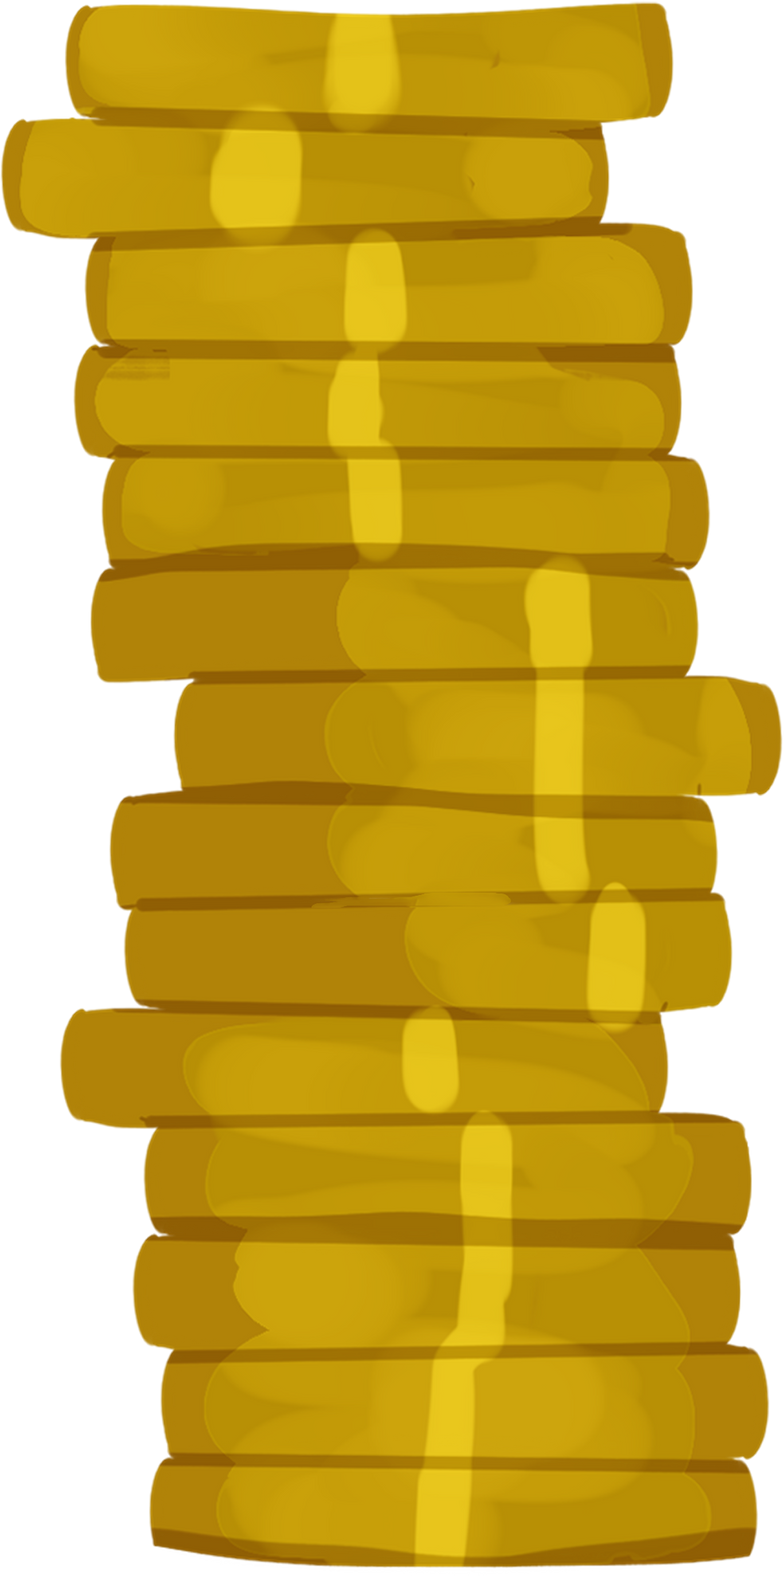 style big stack of coins Vector images in PNG and SVG | Icons8 Illustrations